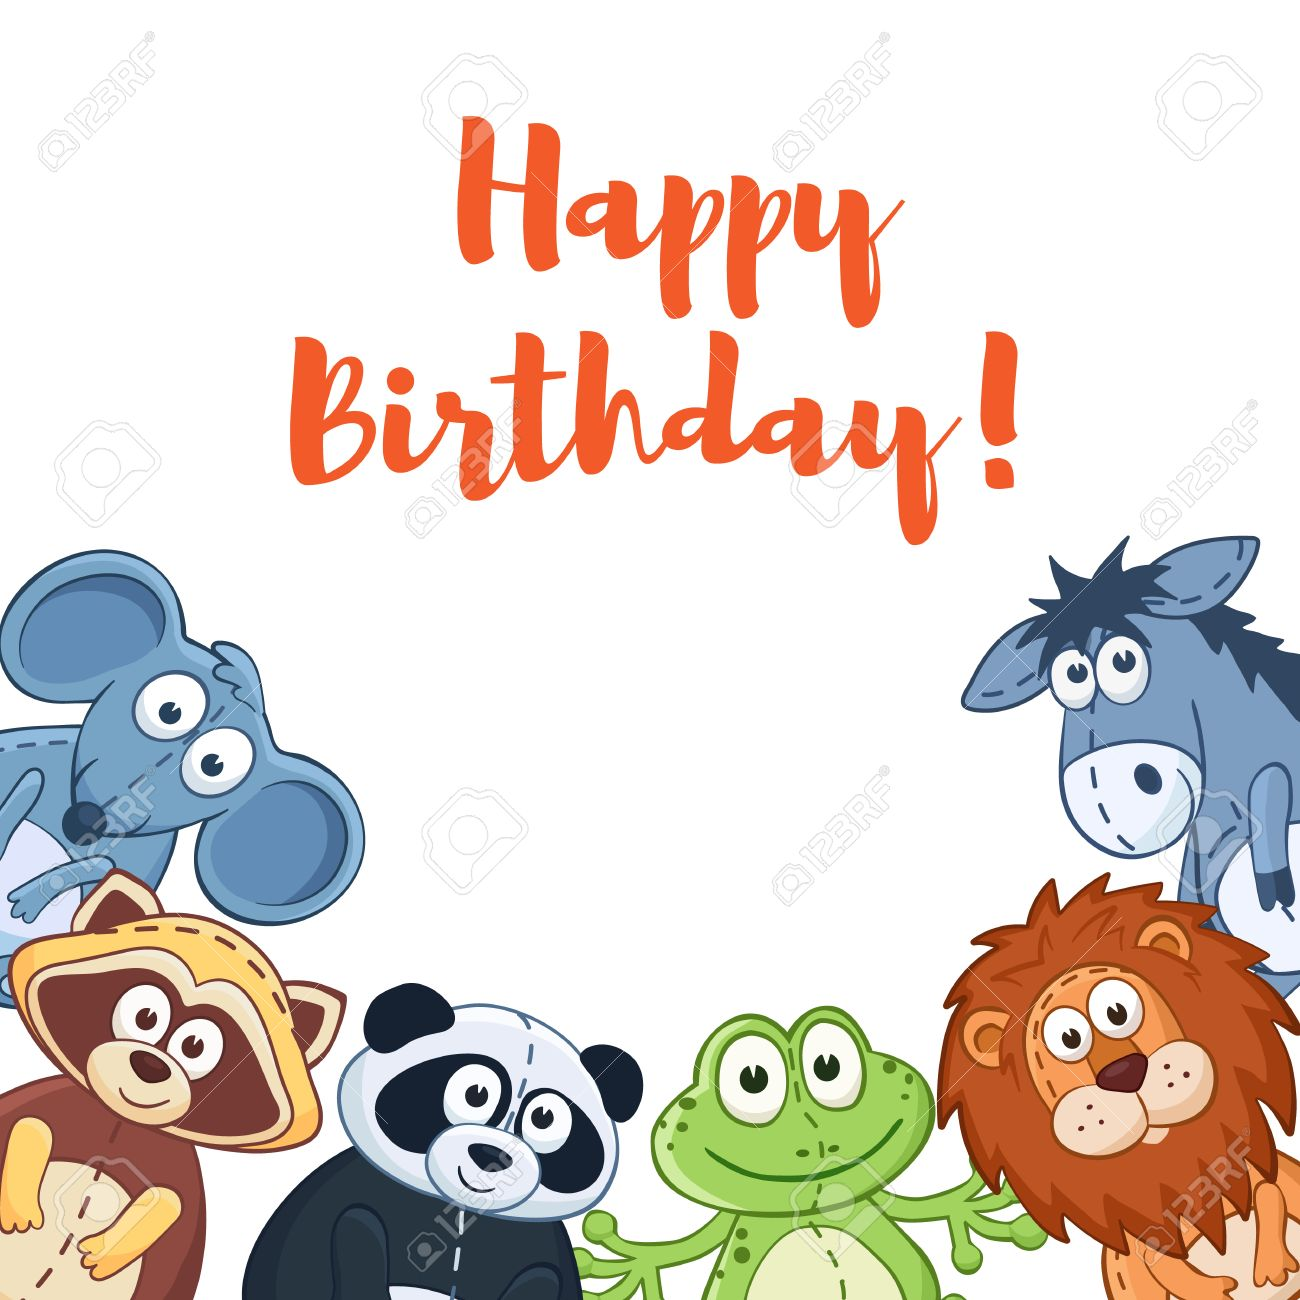 Happy birthday card with cute cartoon animals isolated on white happy birthday card with cute cartoon animals isolated on white background stock vector 49698117 bookmarktalkfo Choice Image